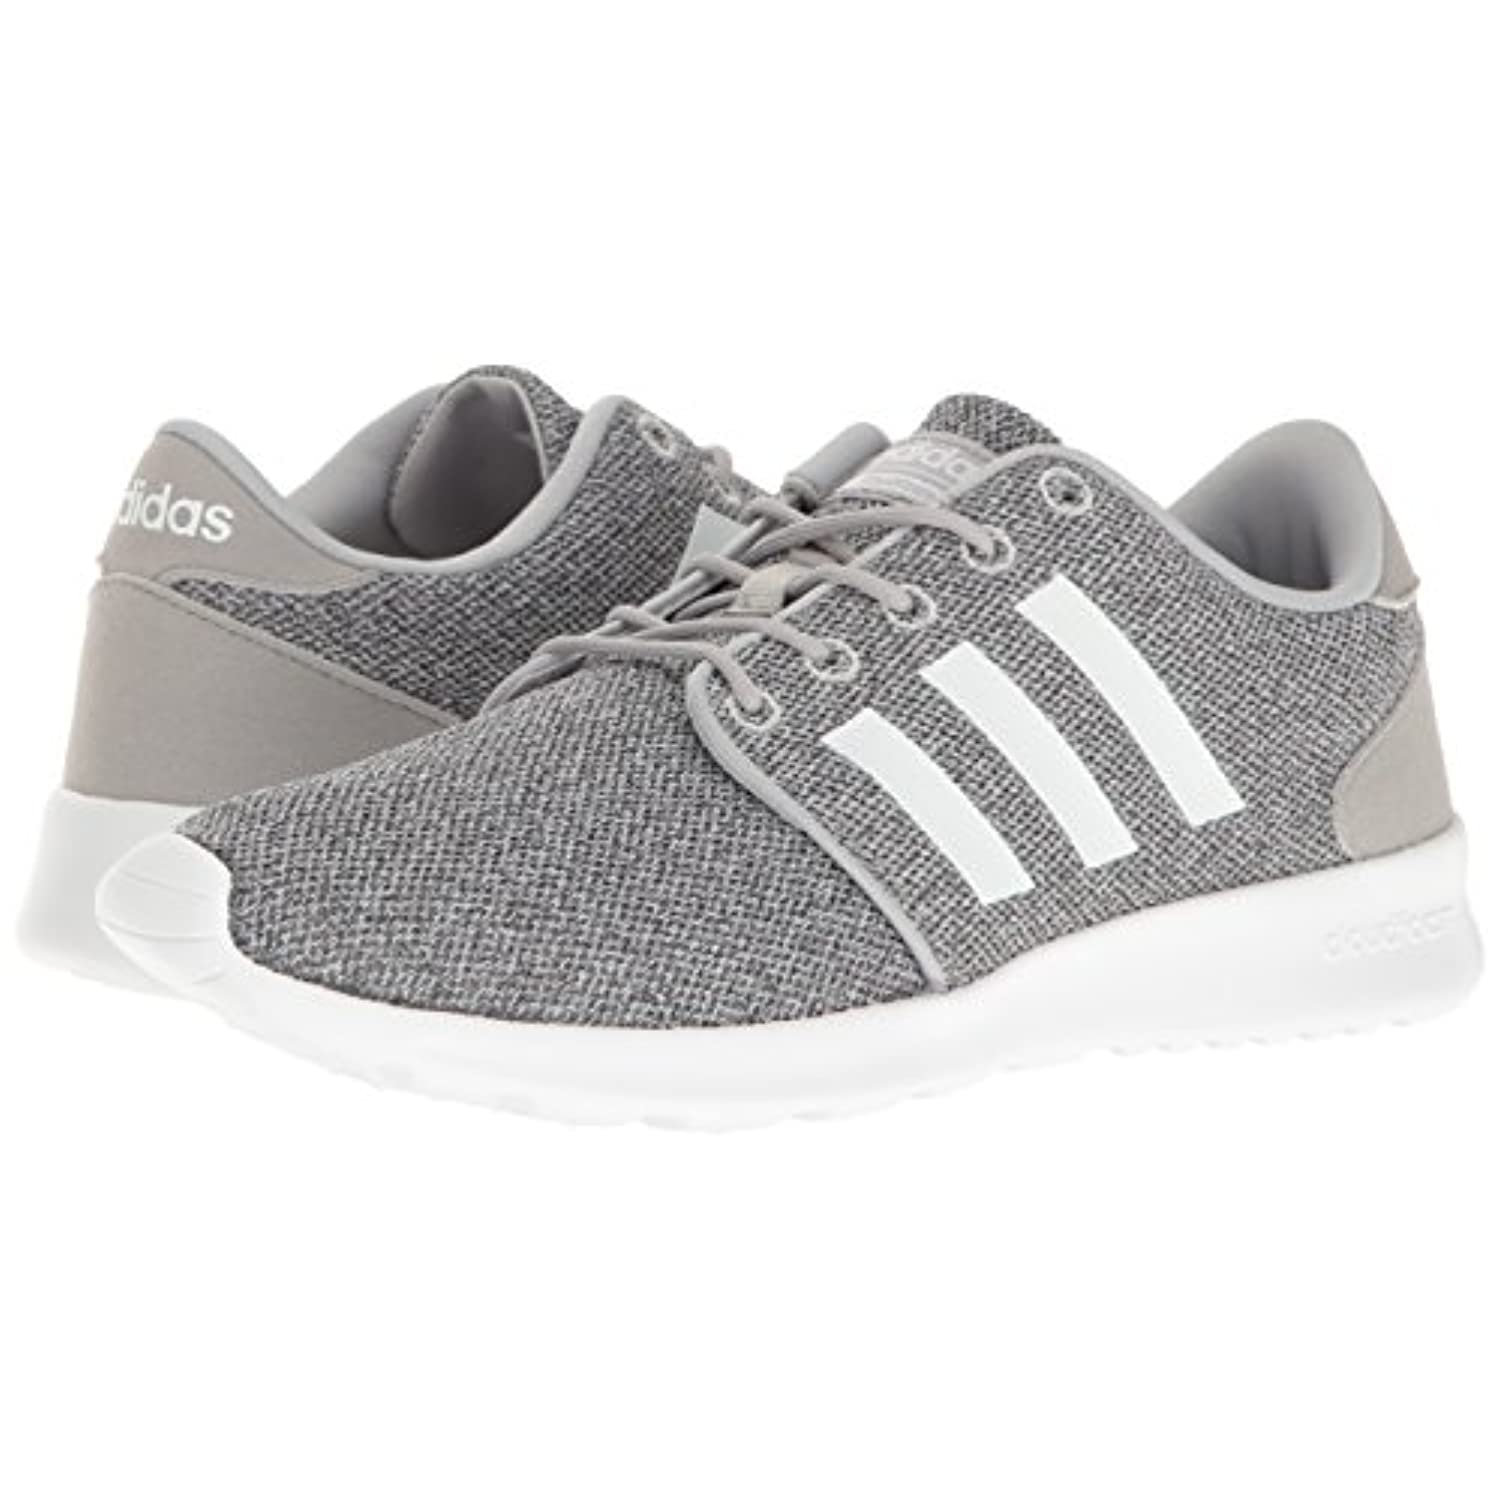 Adidas Running Shoes In Amazon